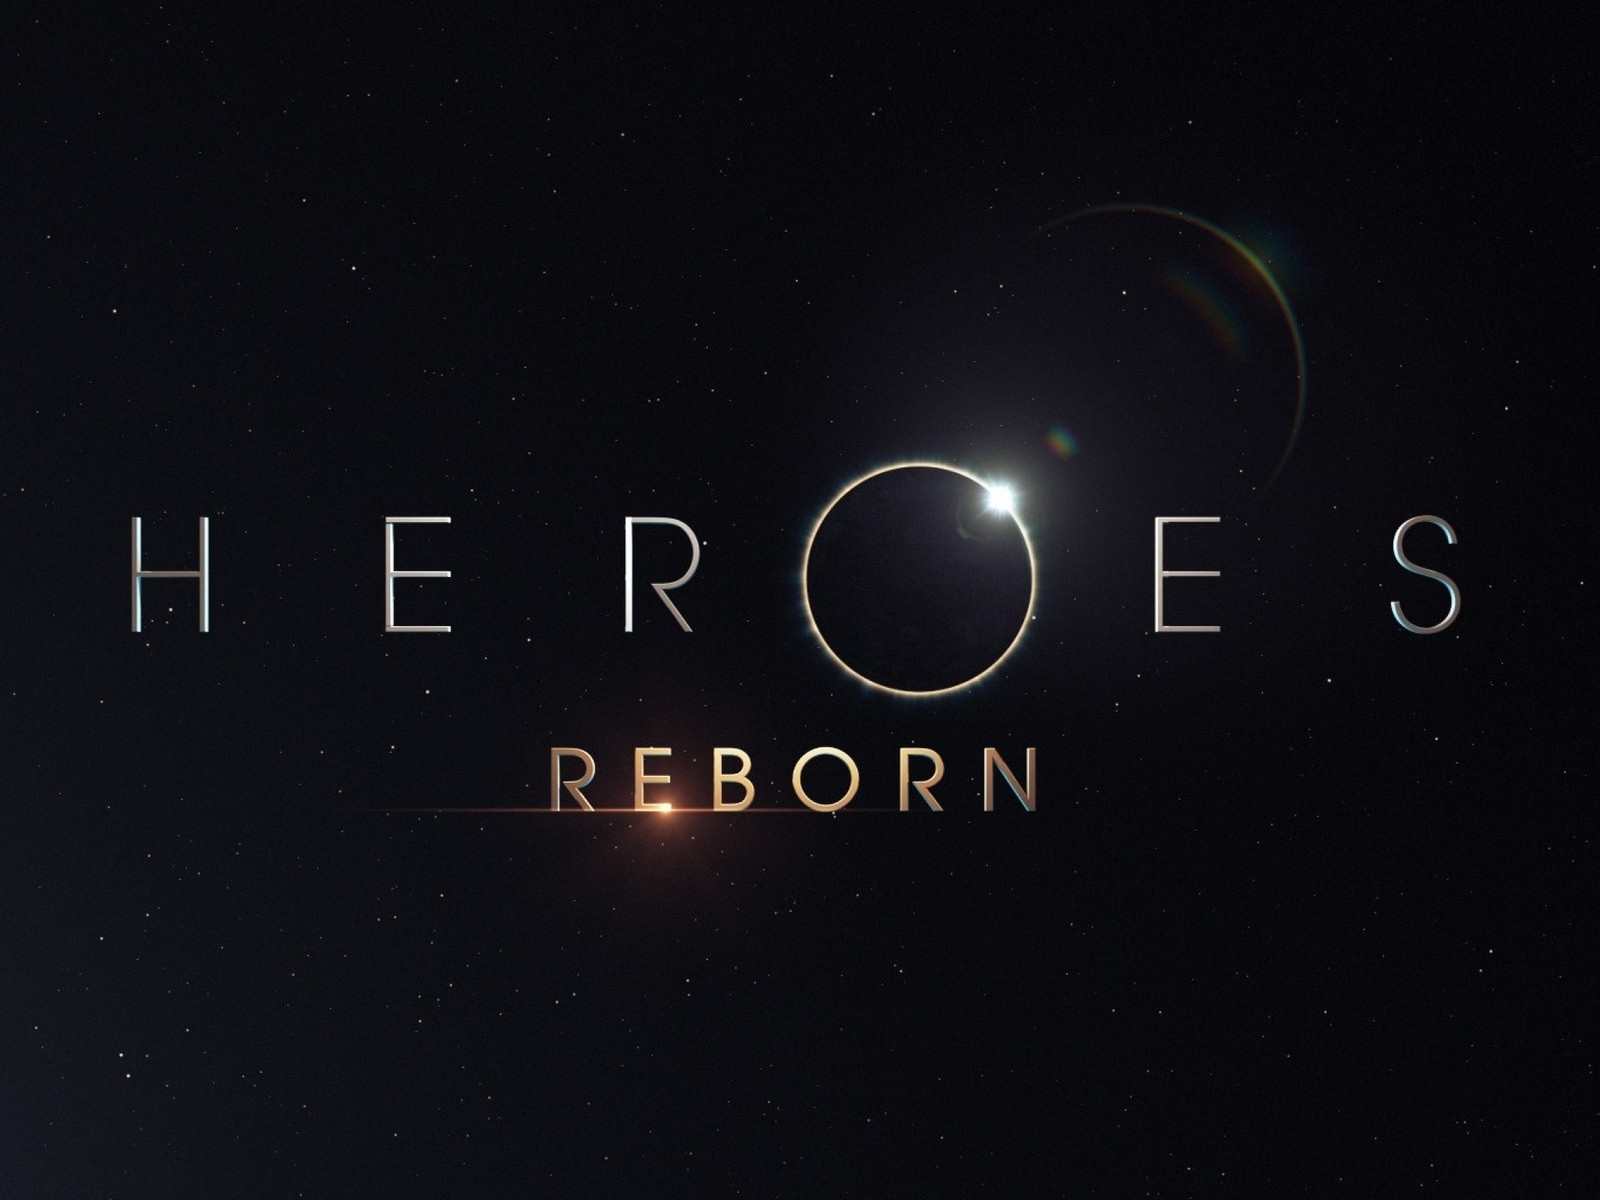 Heroes Reborn Logo for 1600 x 1200 resolution